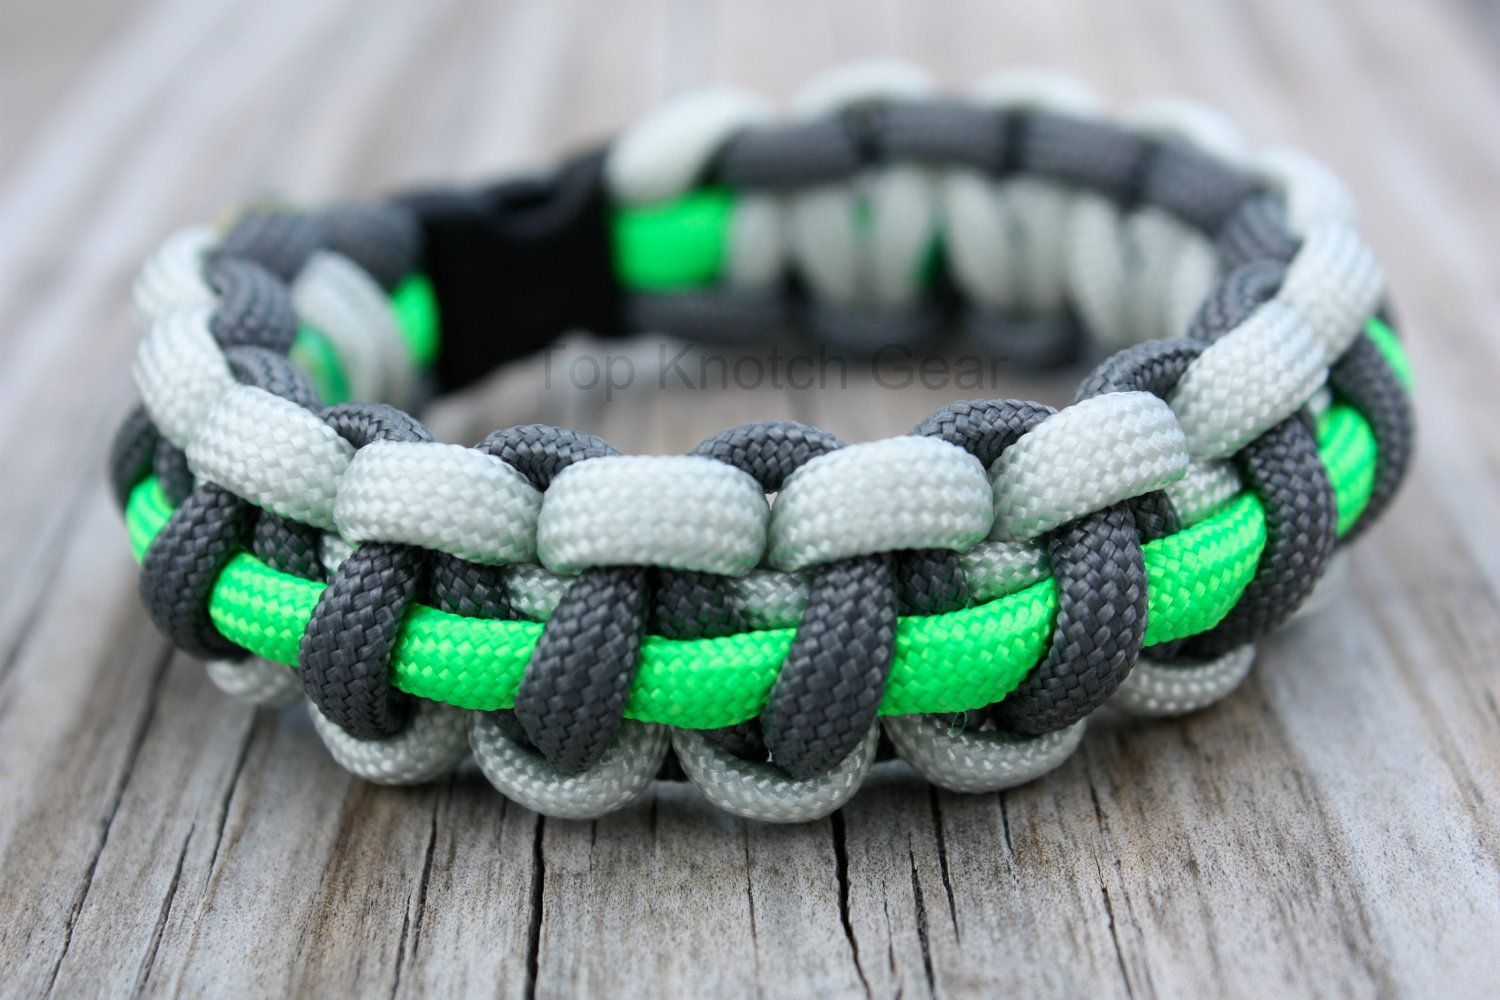 Paracord Bracelet Instructions The Base Camp 3 Color Paracord